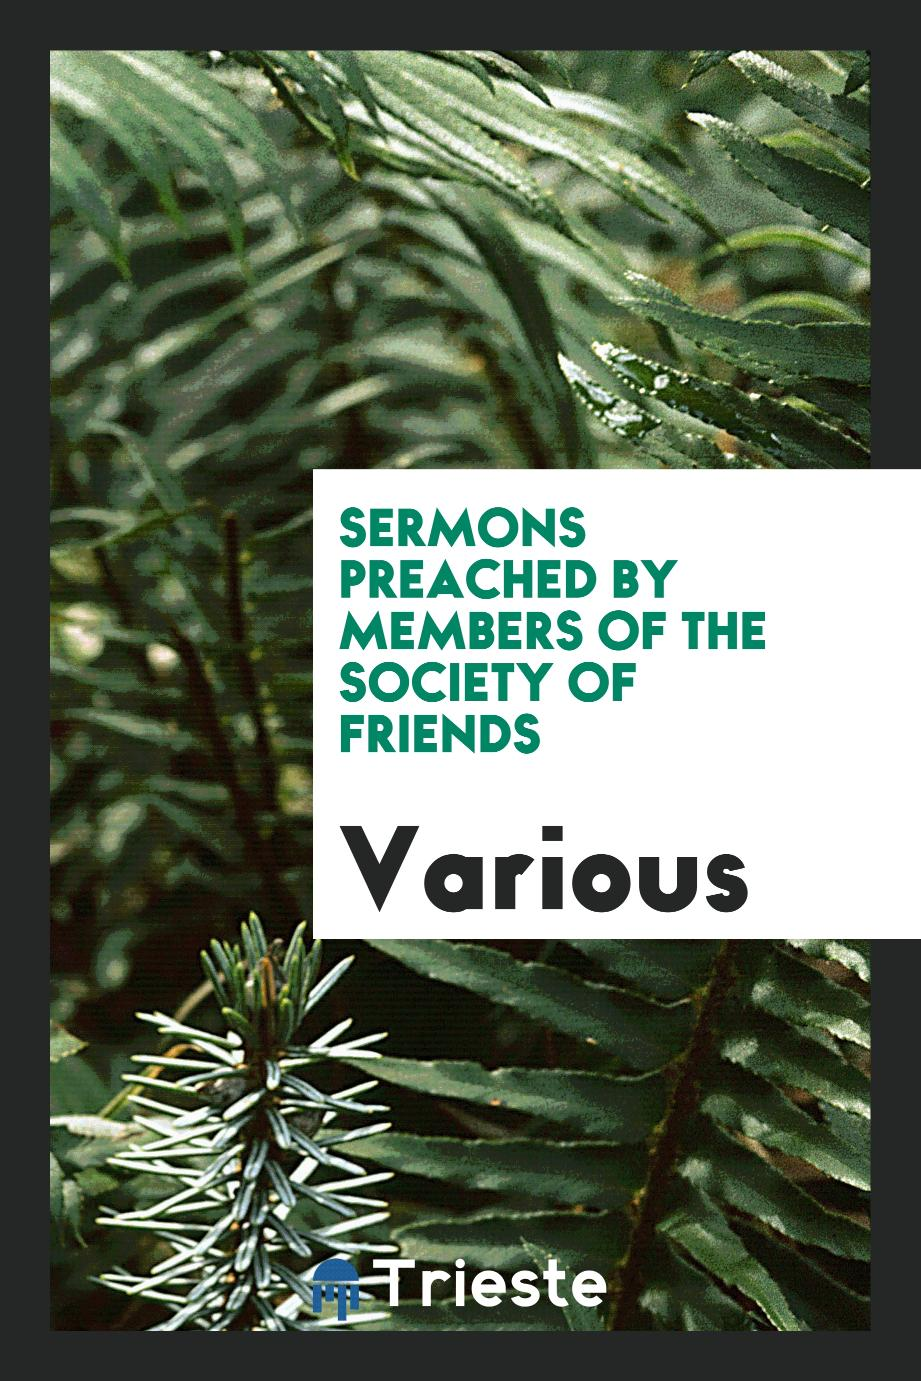 Sermons Preached by Members of the Society of Friends